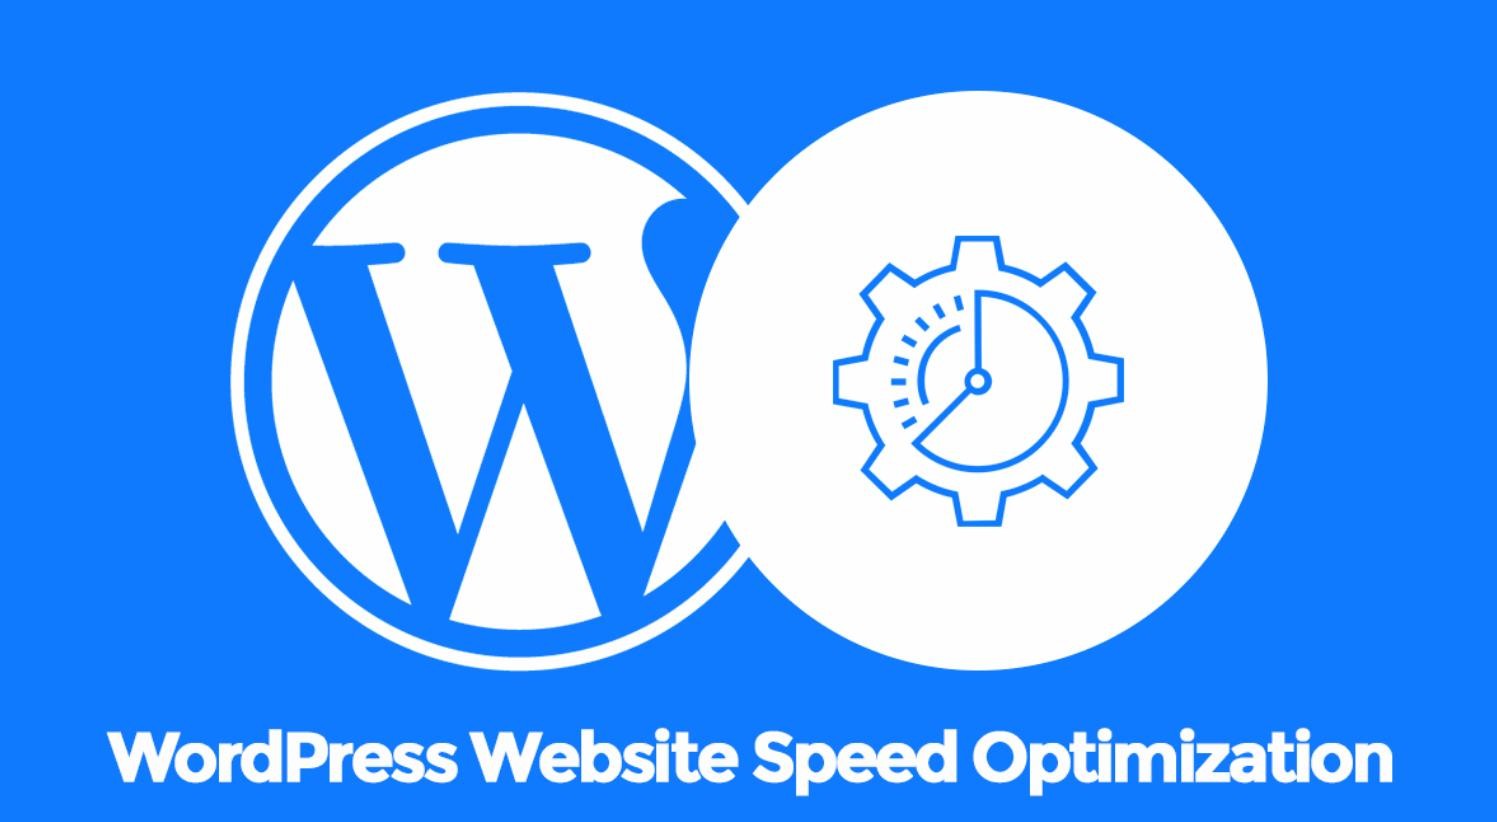 How do I speed up my WordPress website?